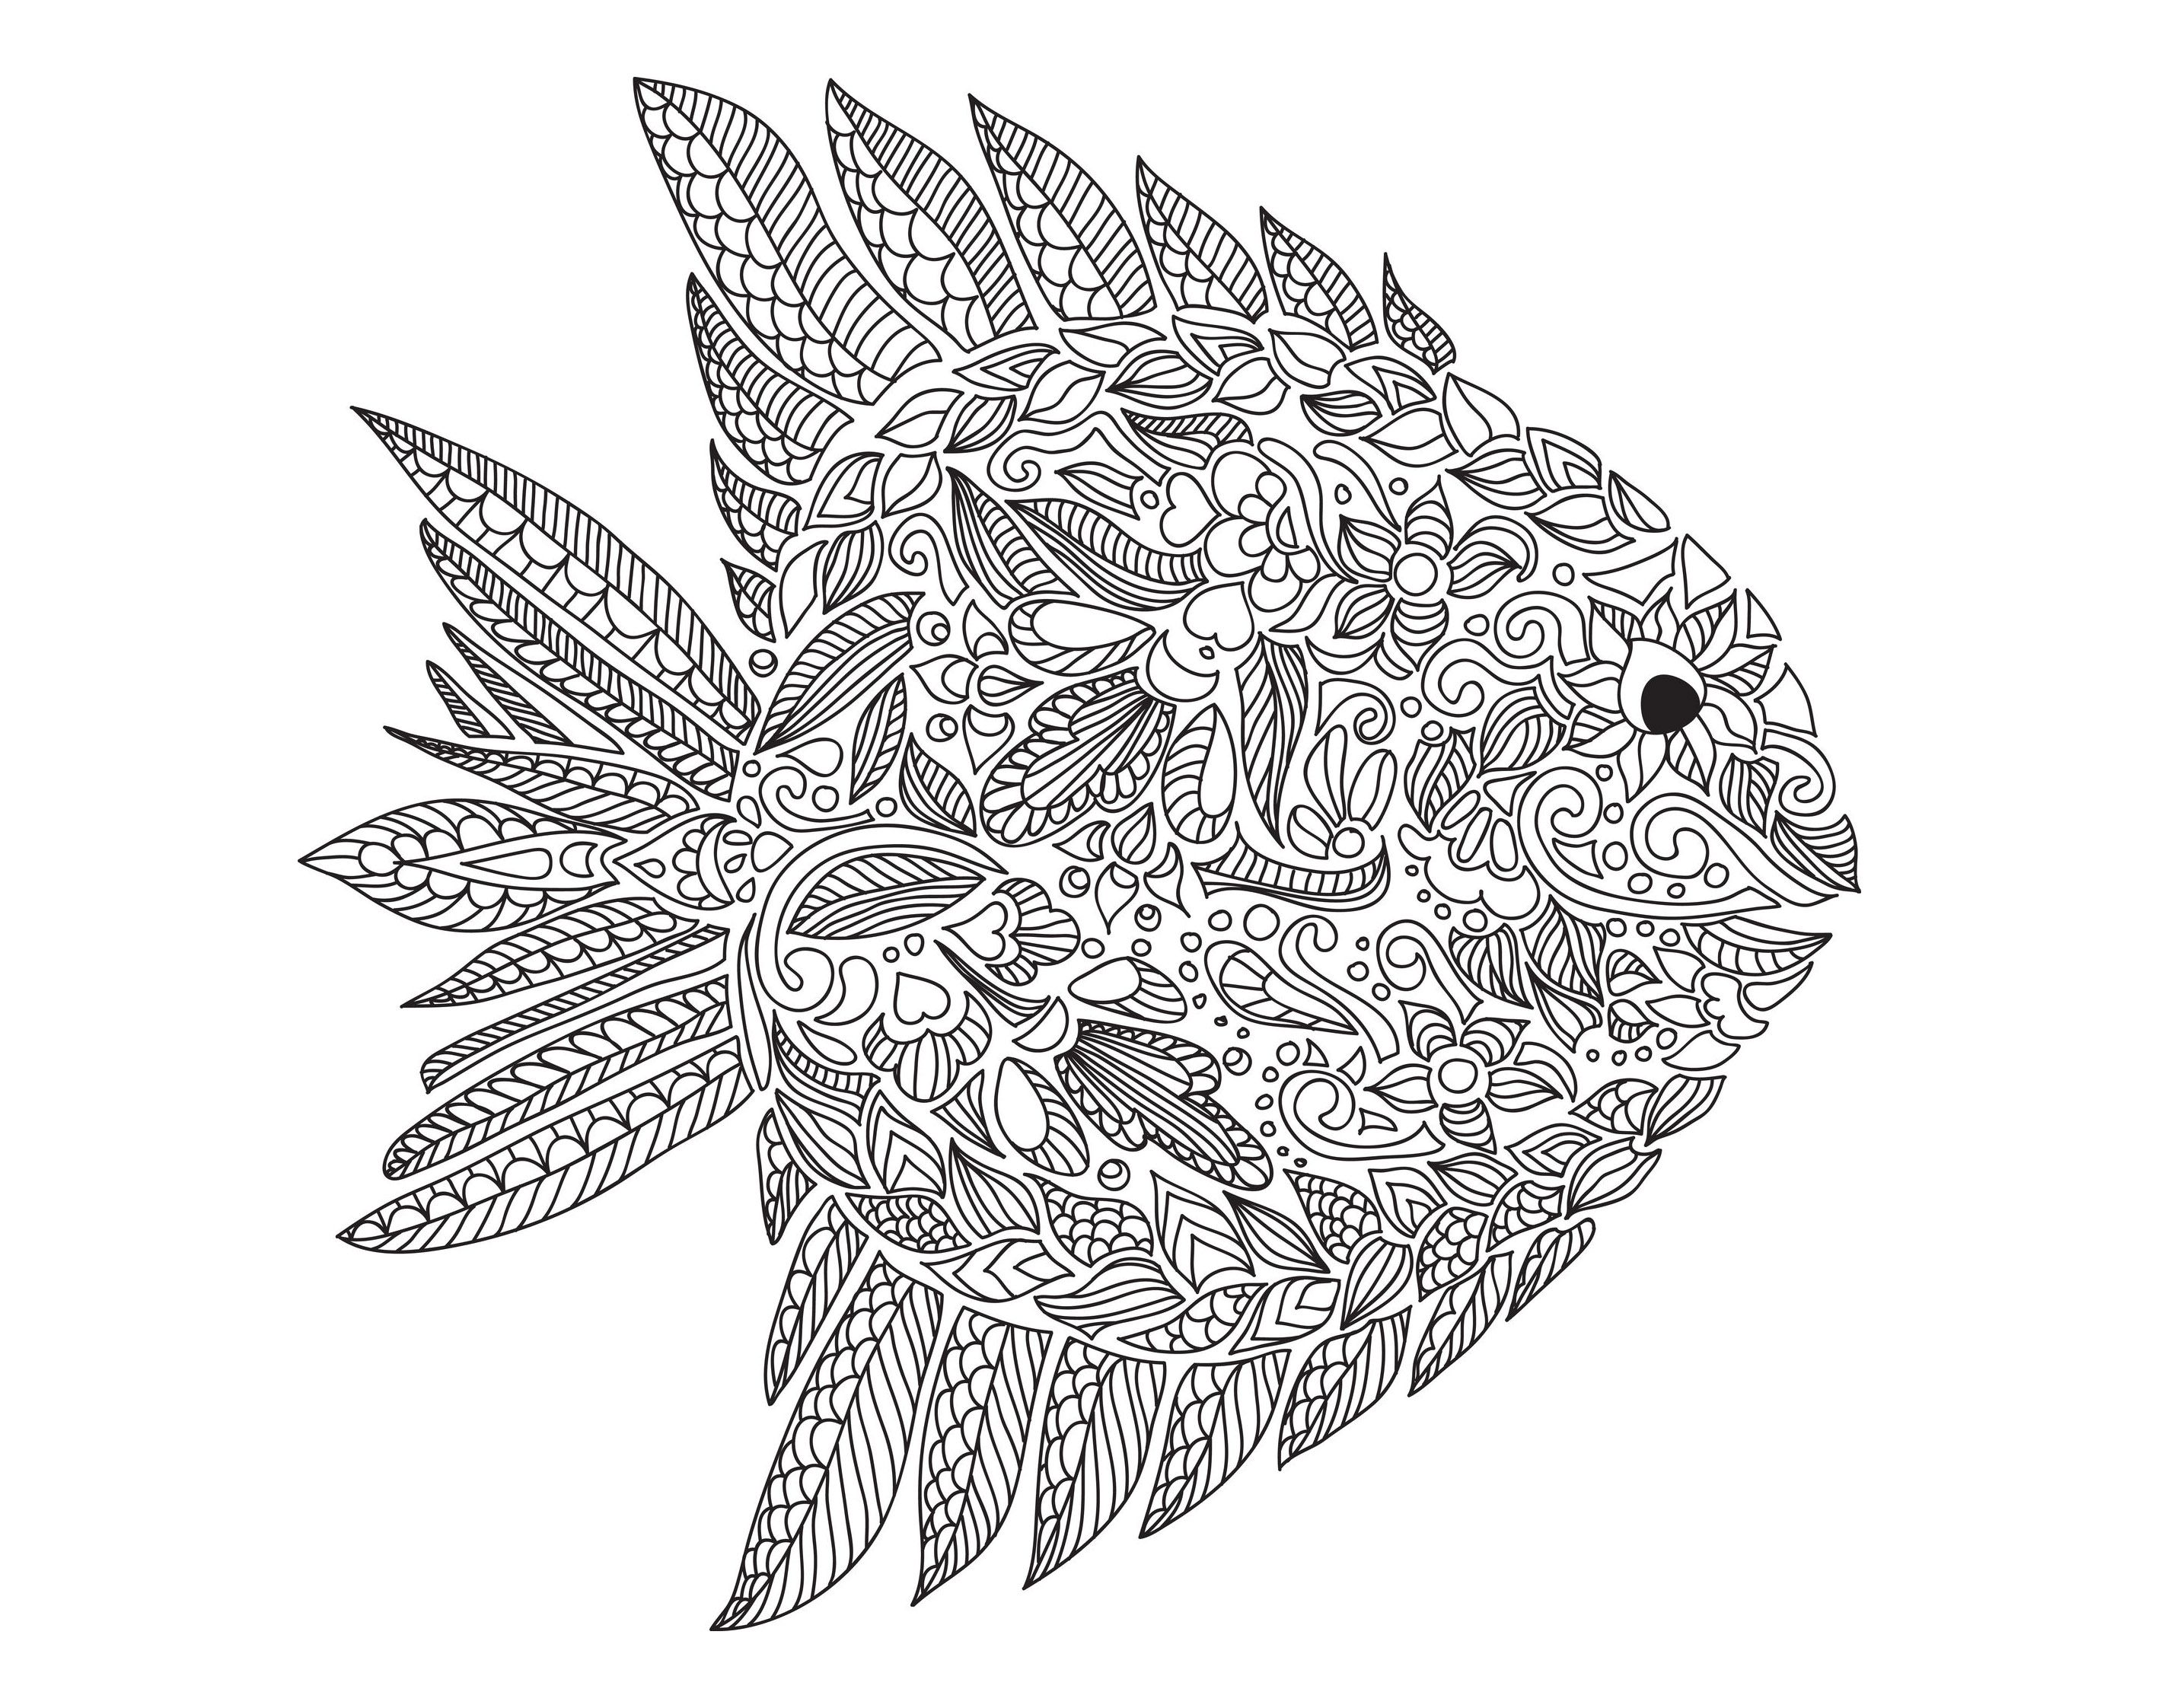 Free Coloring Page Coloring Adult Zentangle Fish By Artnataliia Zentangle Fish Drawn With